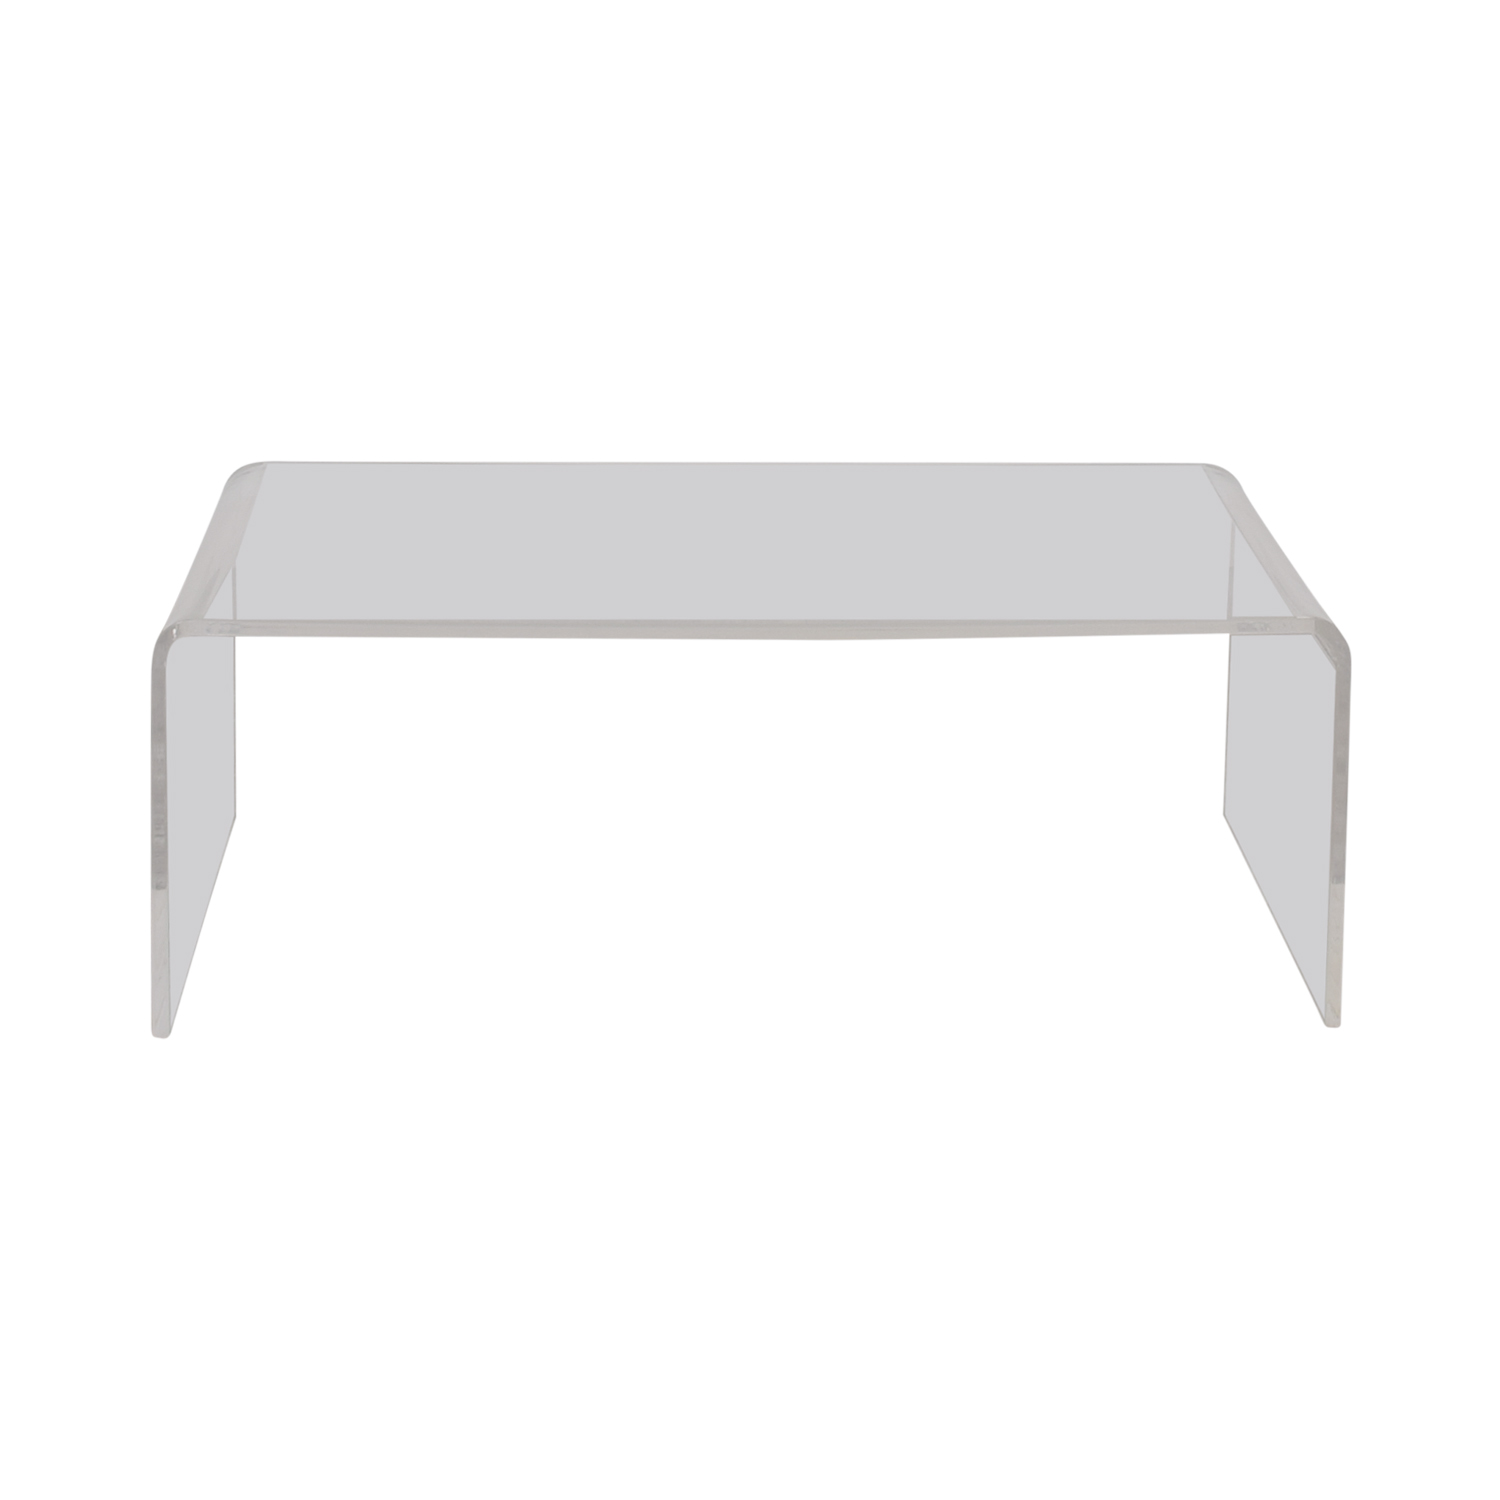 shop CB2 Peekaboo Acrylic Coffee Table CB2 Tables